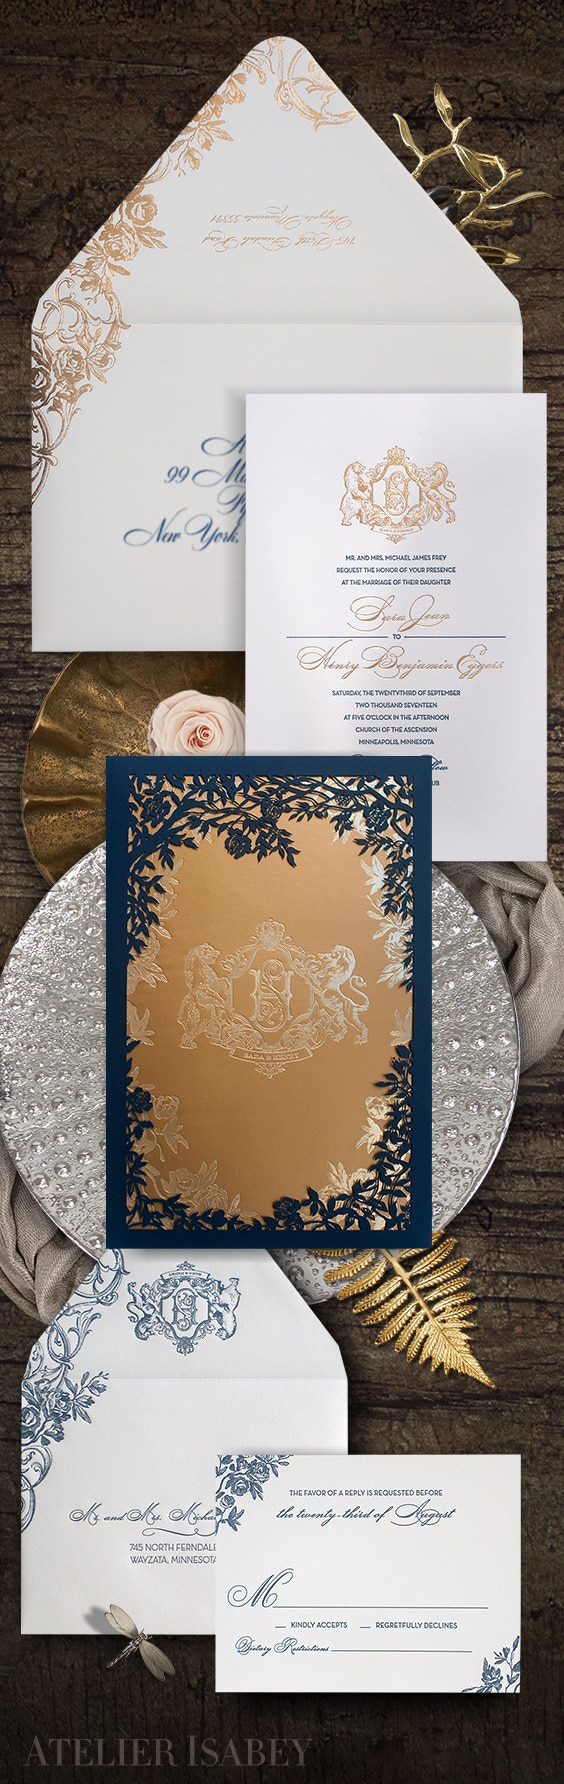 Beauty and the beast laser cut wedding invitation